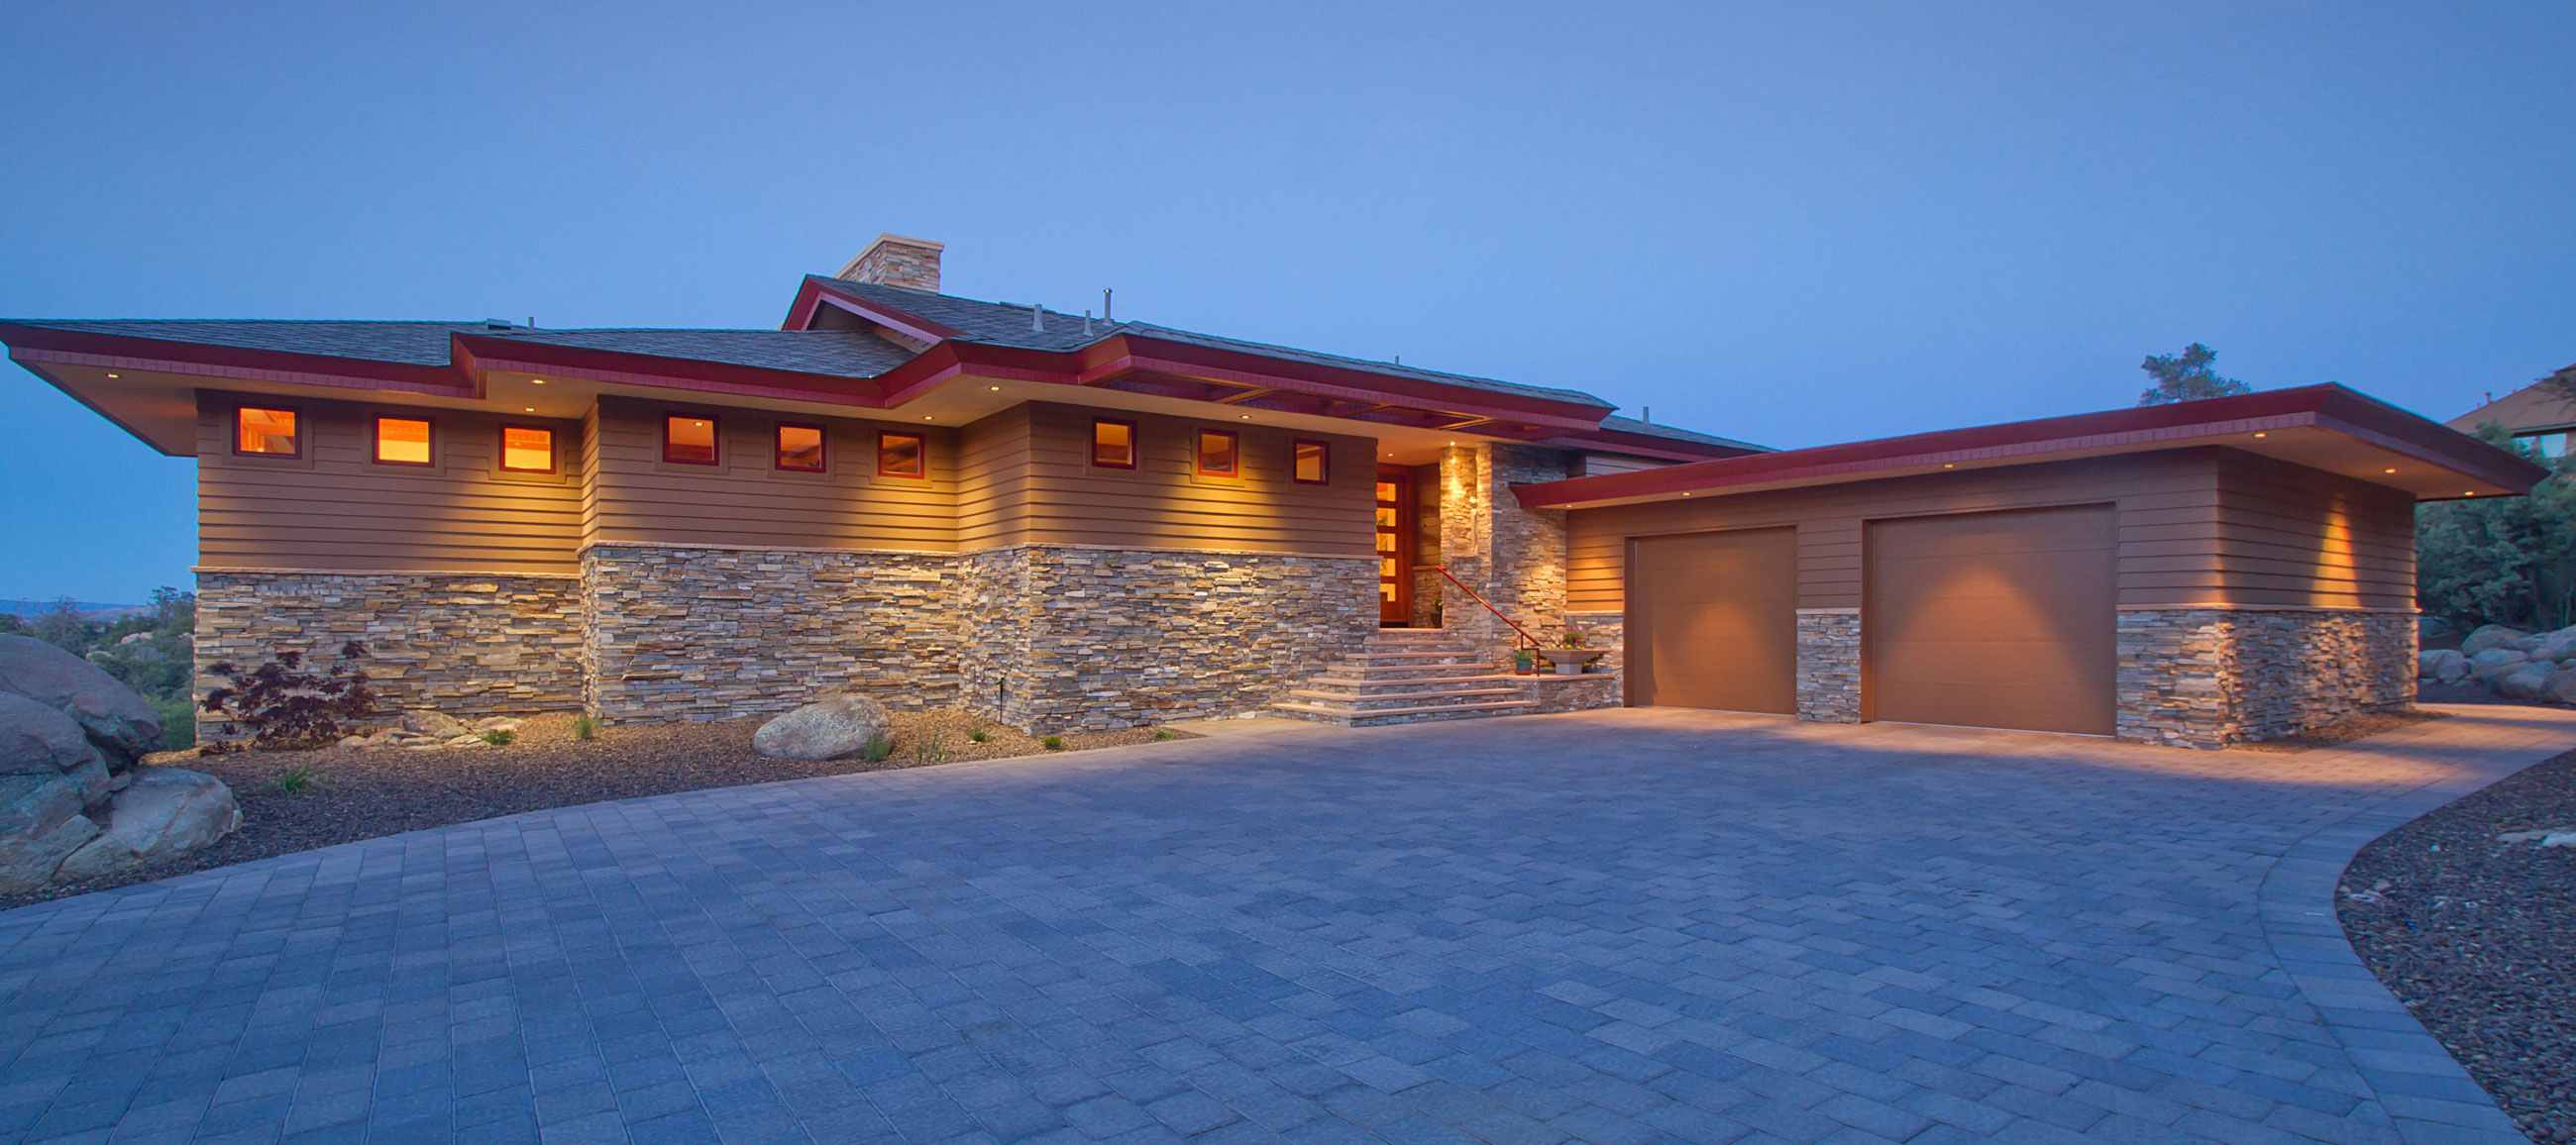 Hinshaw Residence in Prescott by Michael Rust-10